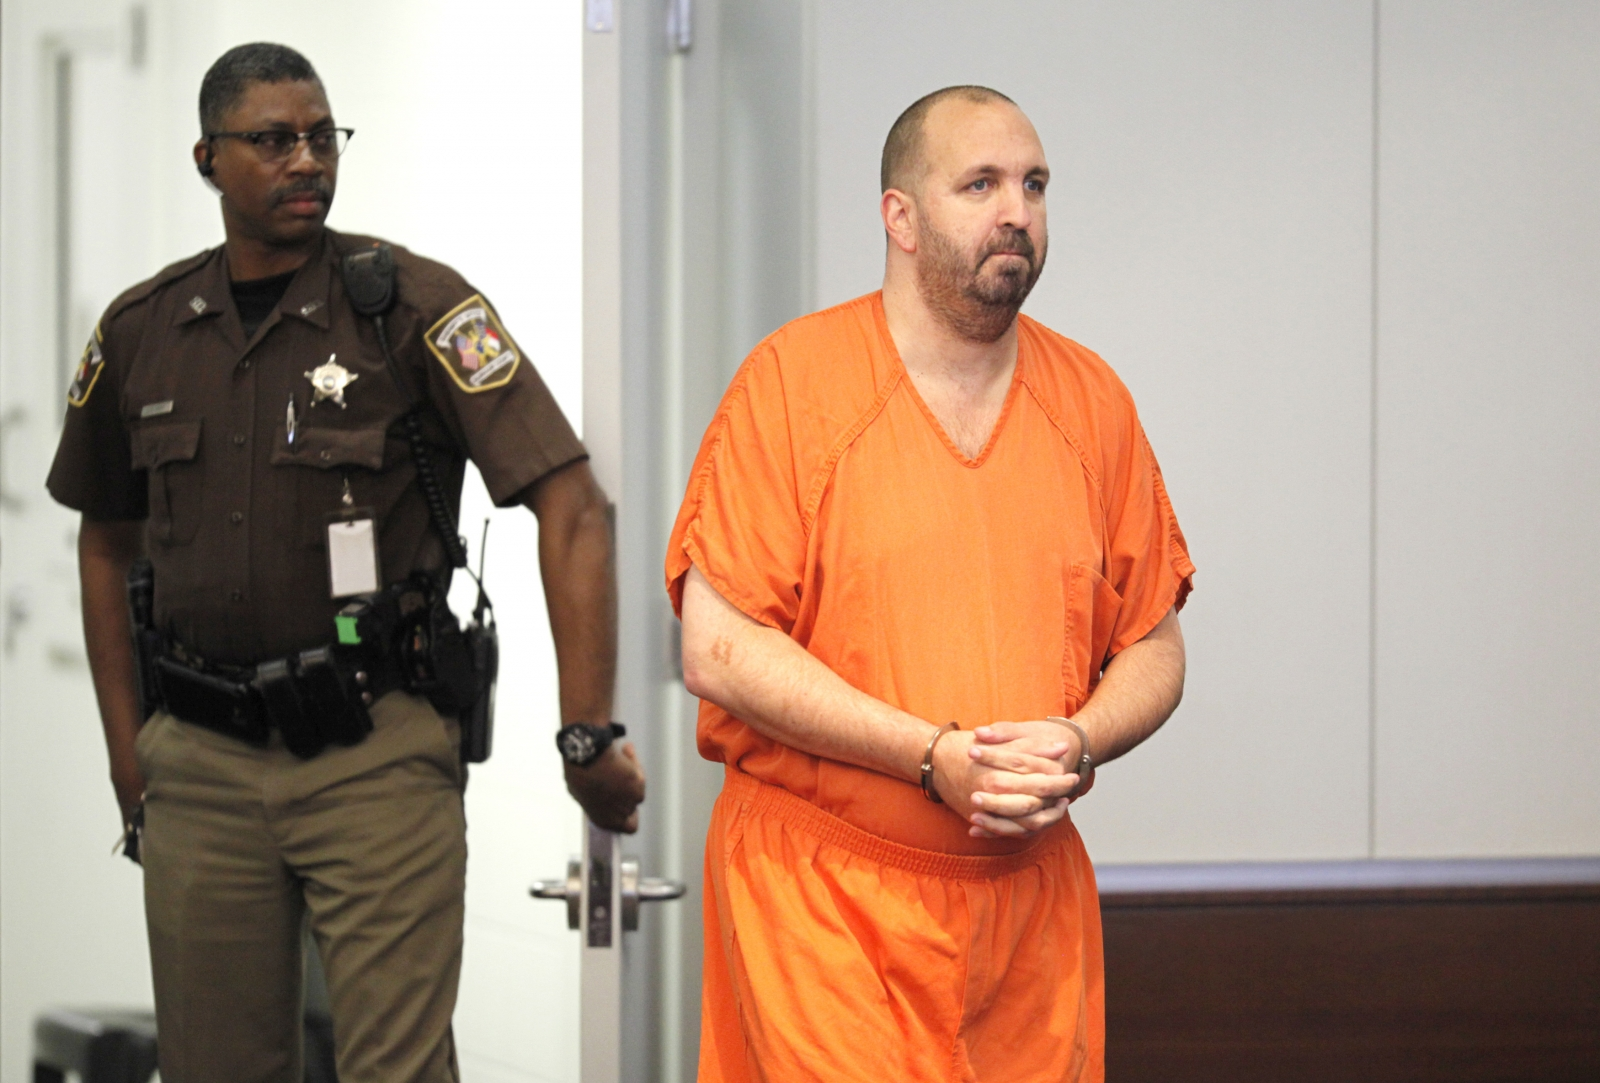 Craig Stephen Hicks faces death penalty